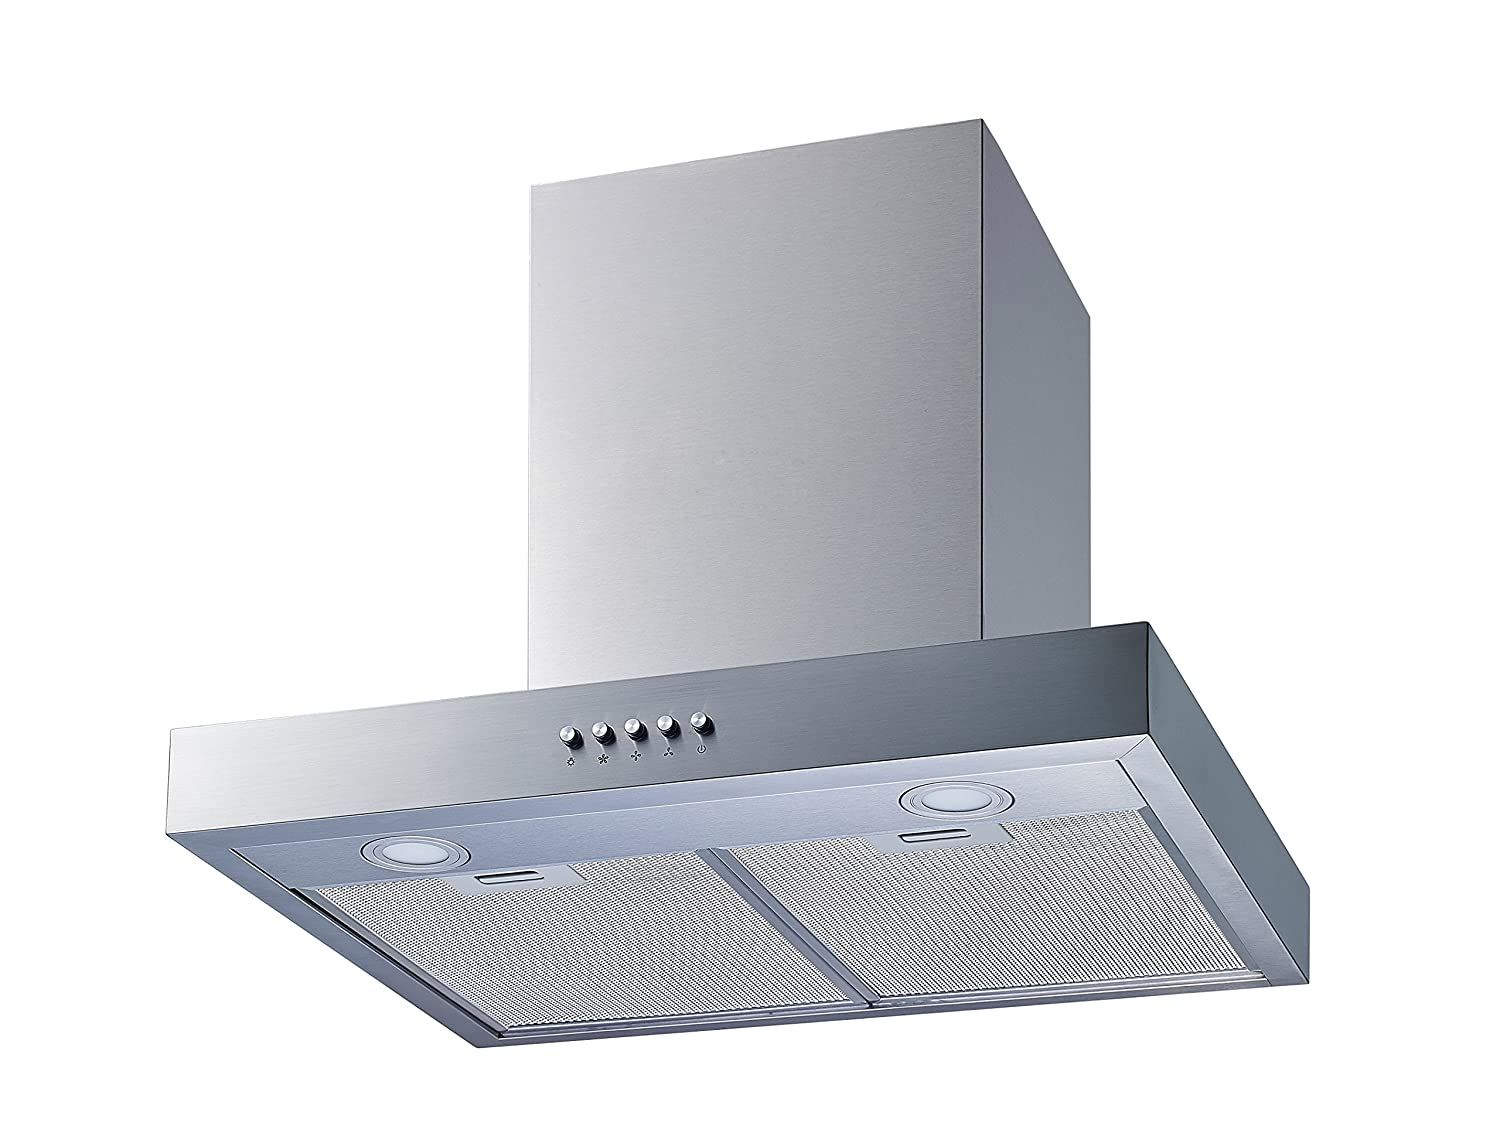 """Winflo New 30"""" Convertible Stainless Steel Wall Mount Range Hood with Aluminum Mesh filter, Ultra bright LED lights and Push Button 3 Speed Control"""